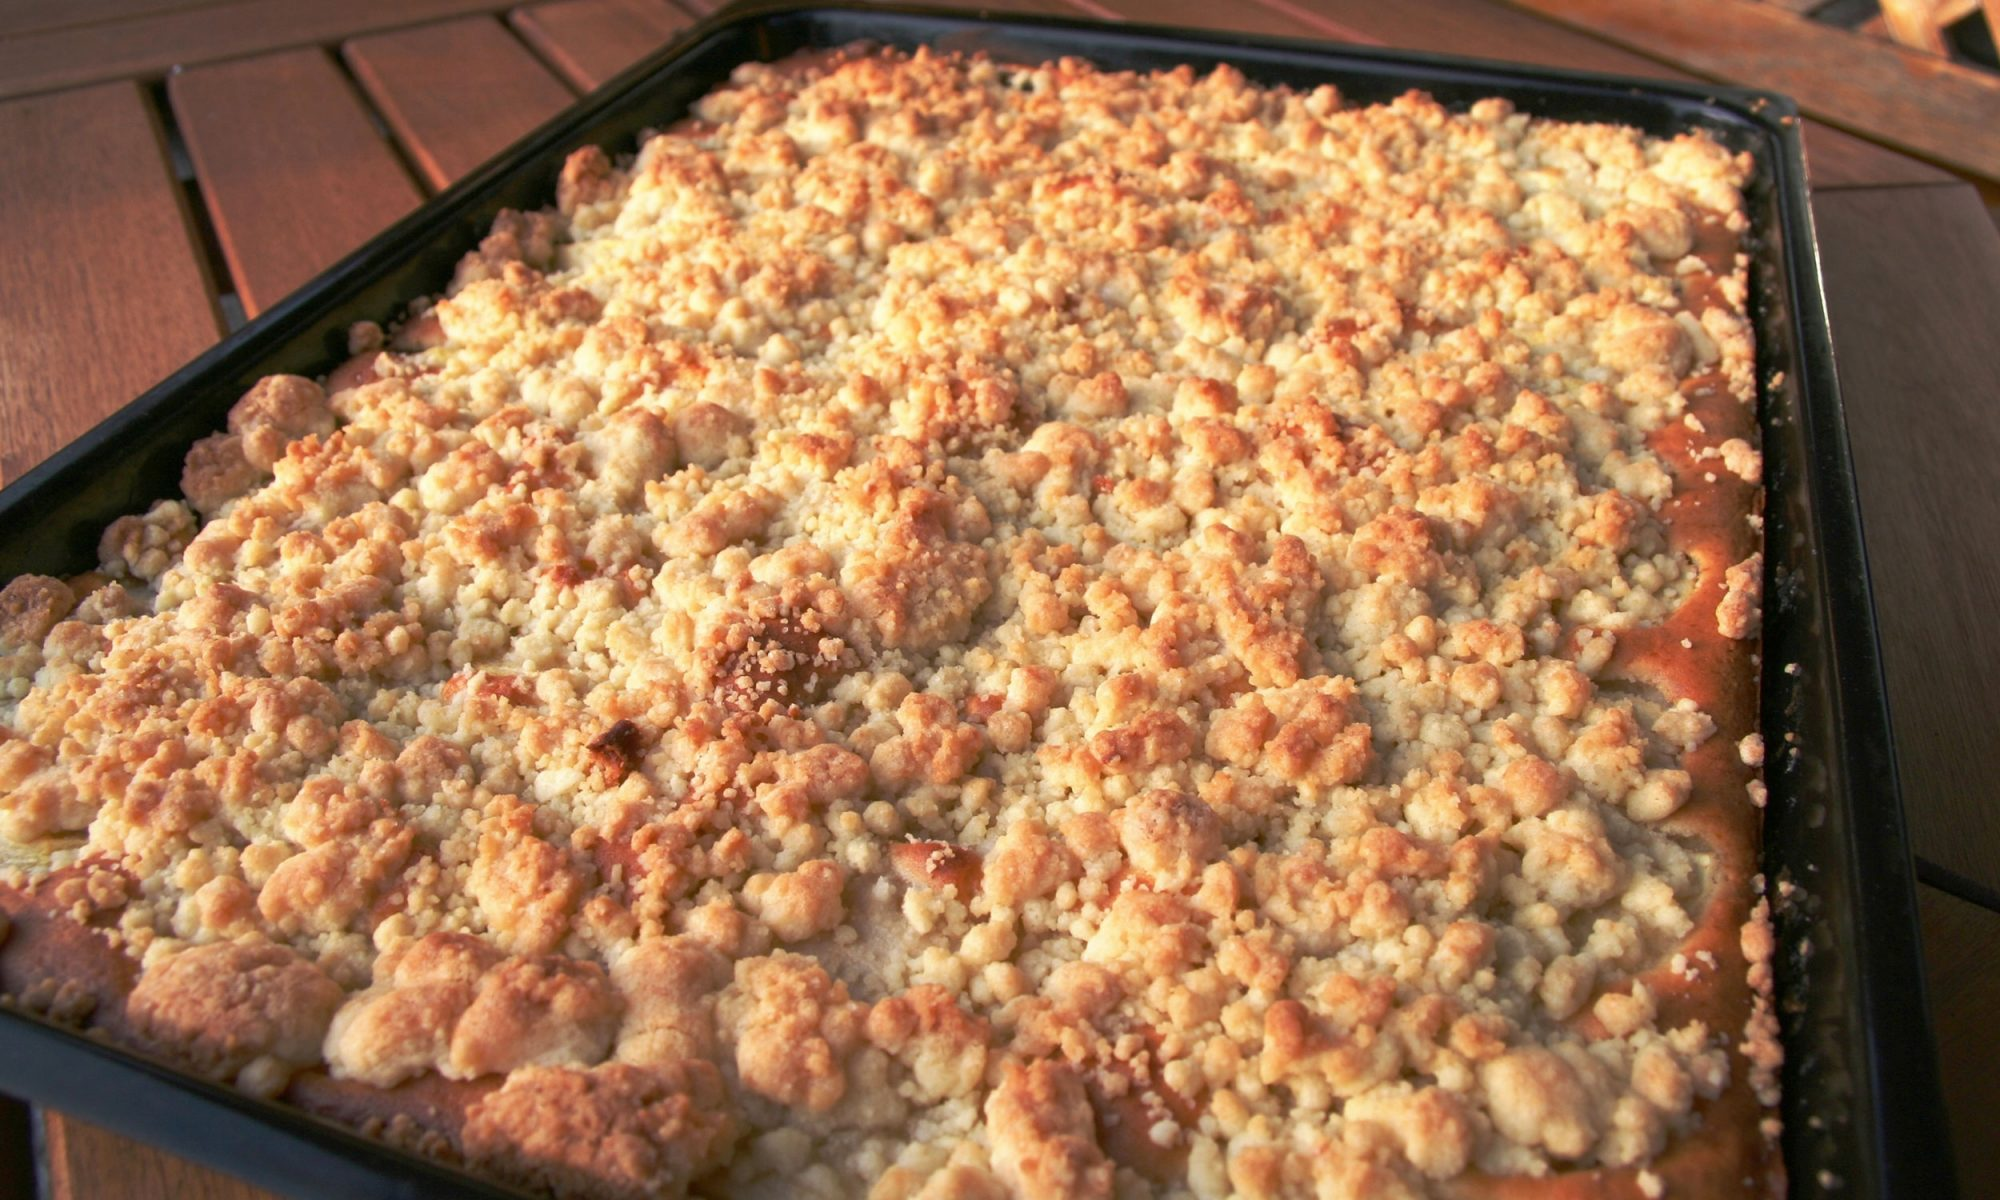 sheet pan crumble